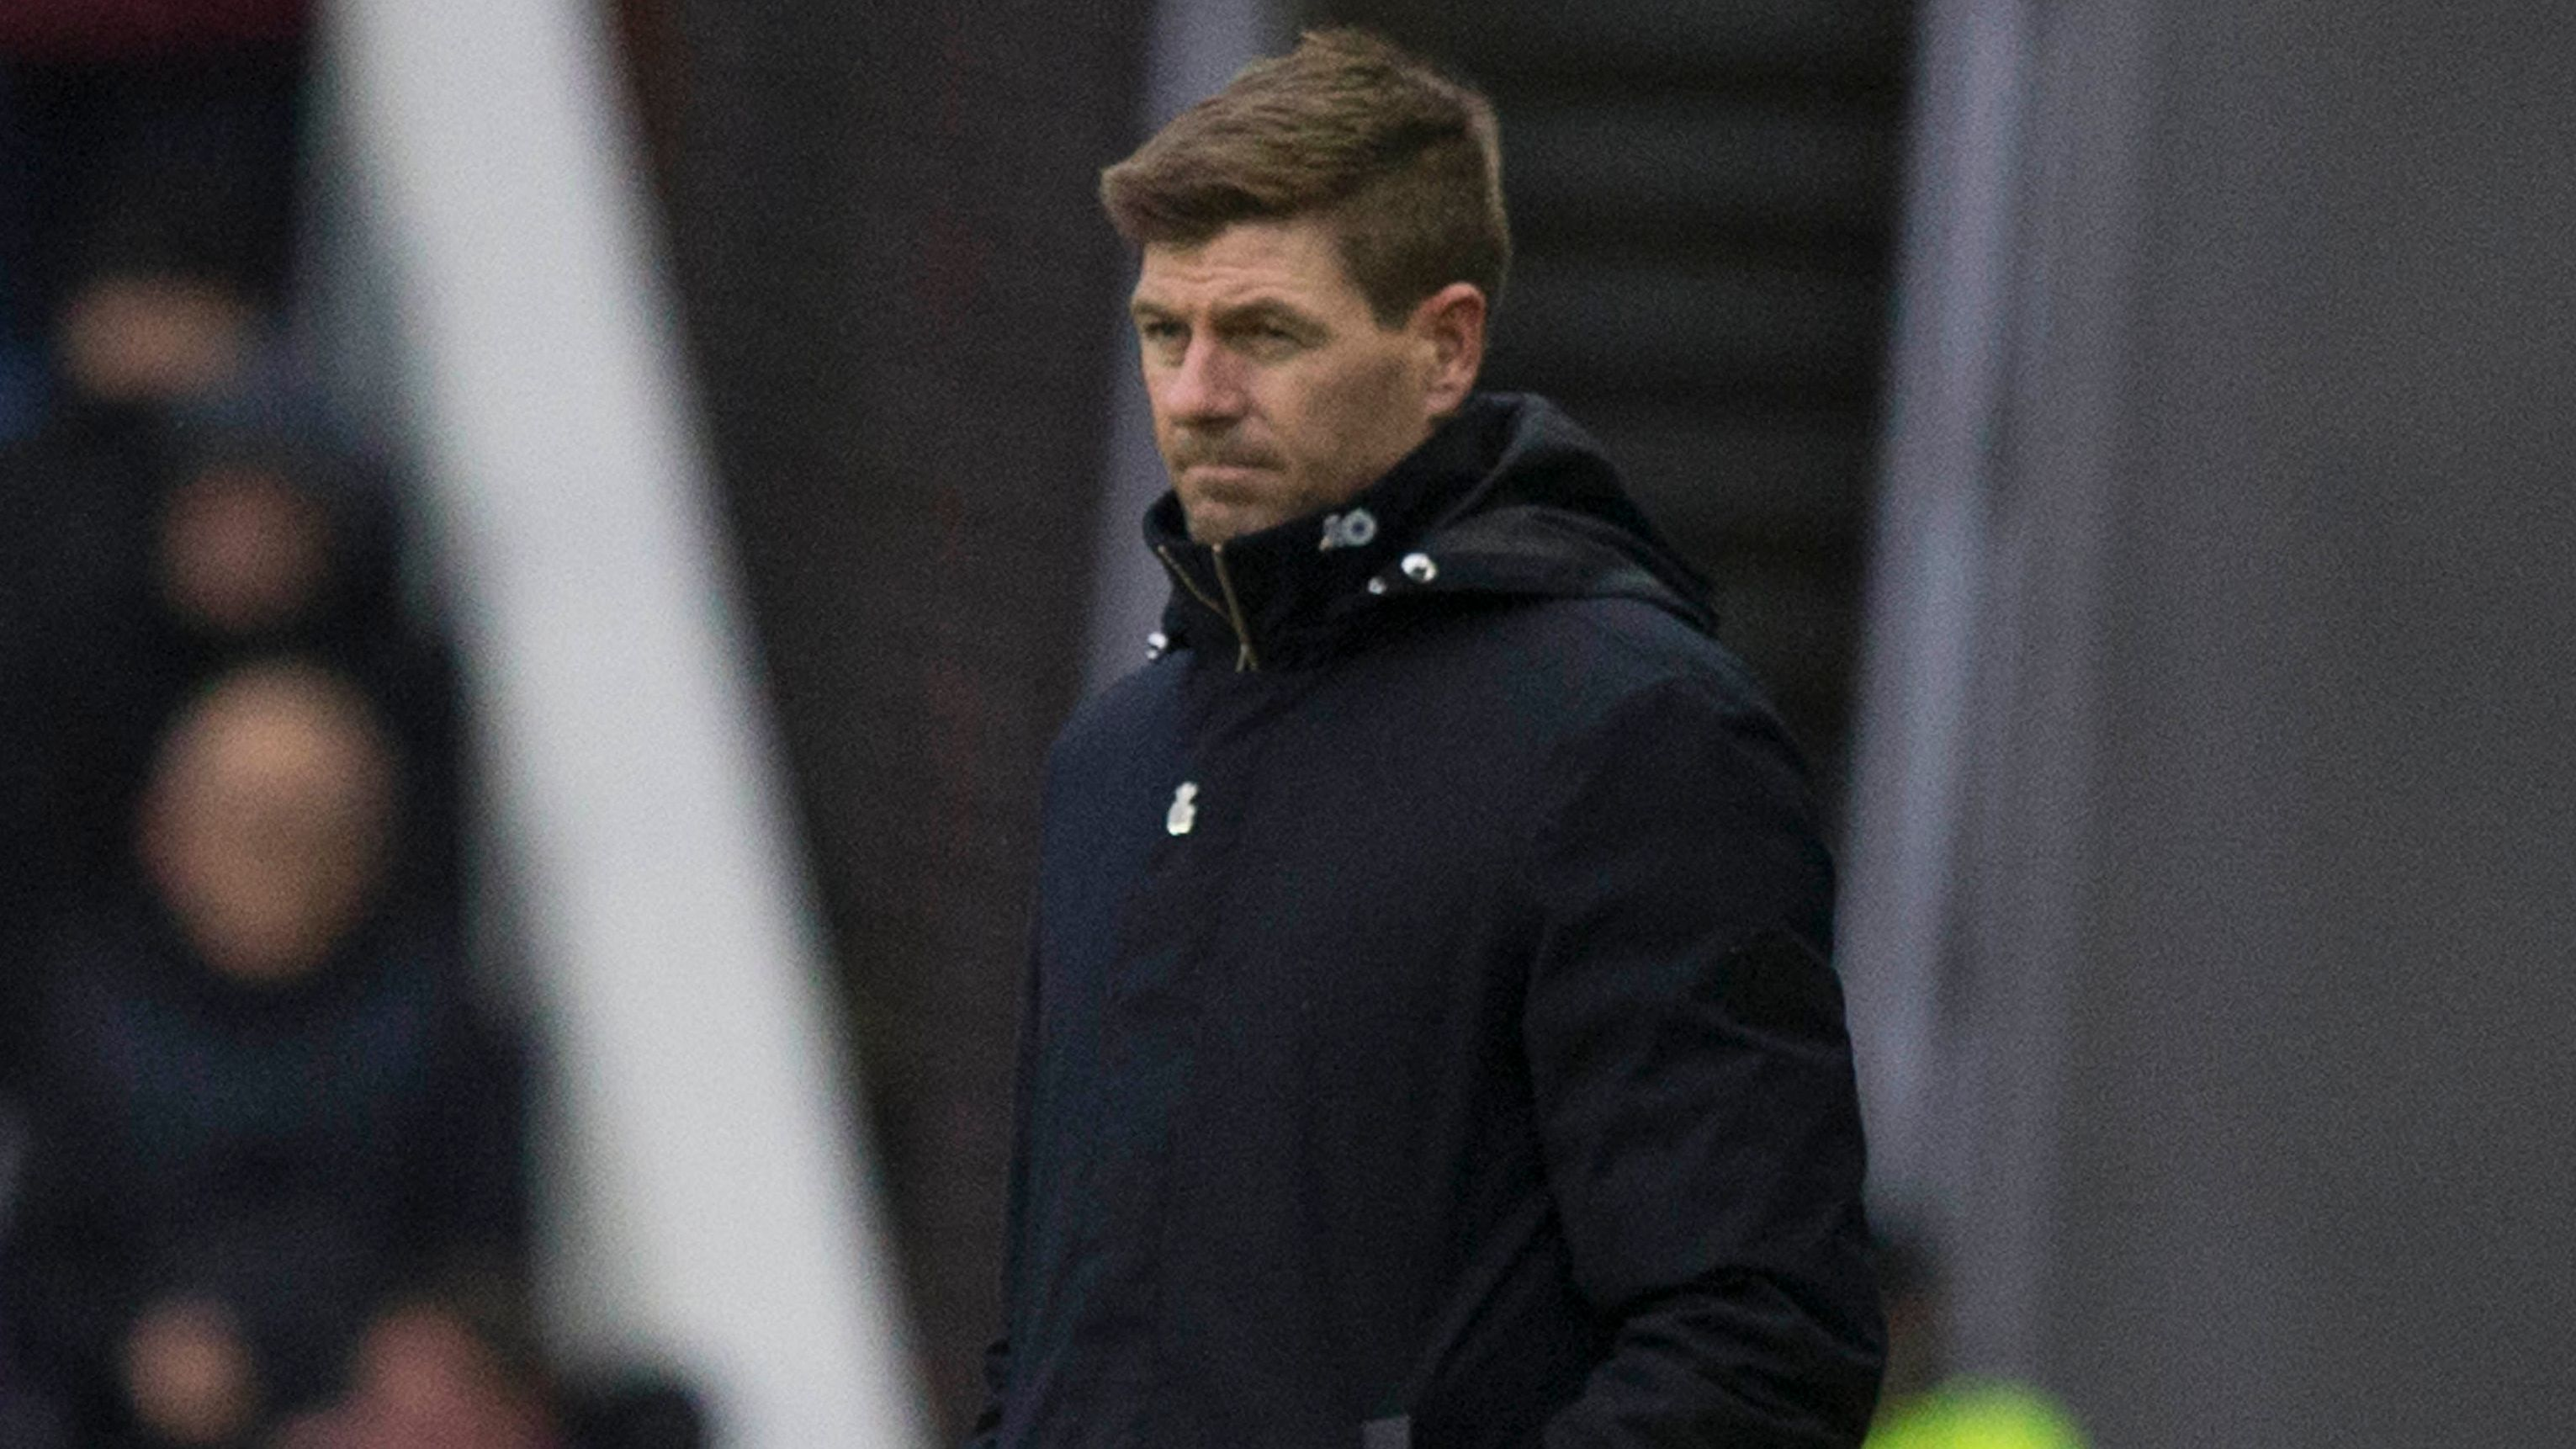 Gerrard readies his players for first VAR experience